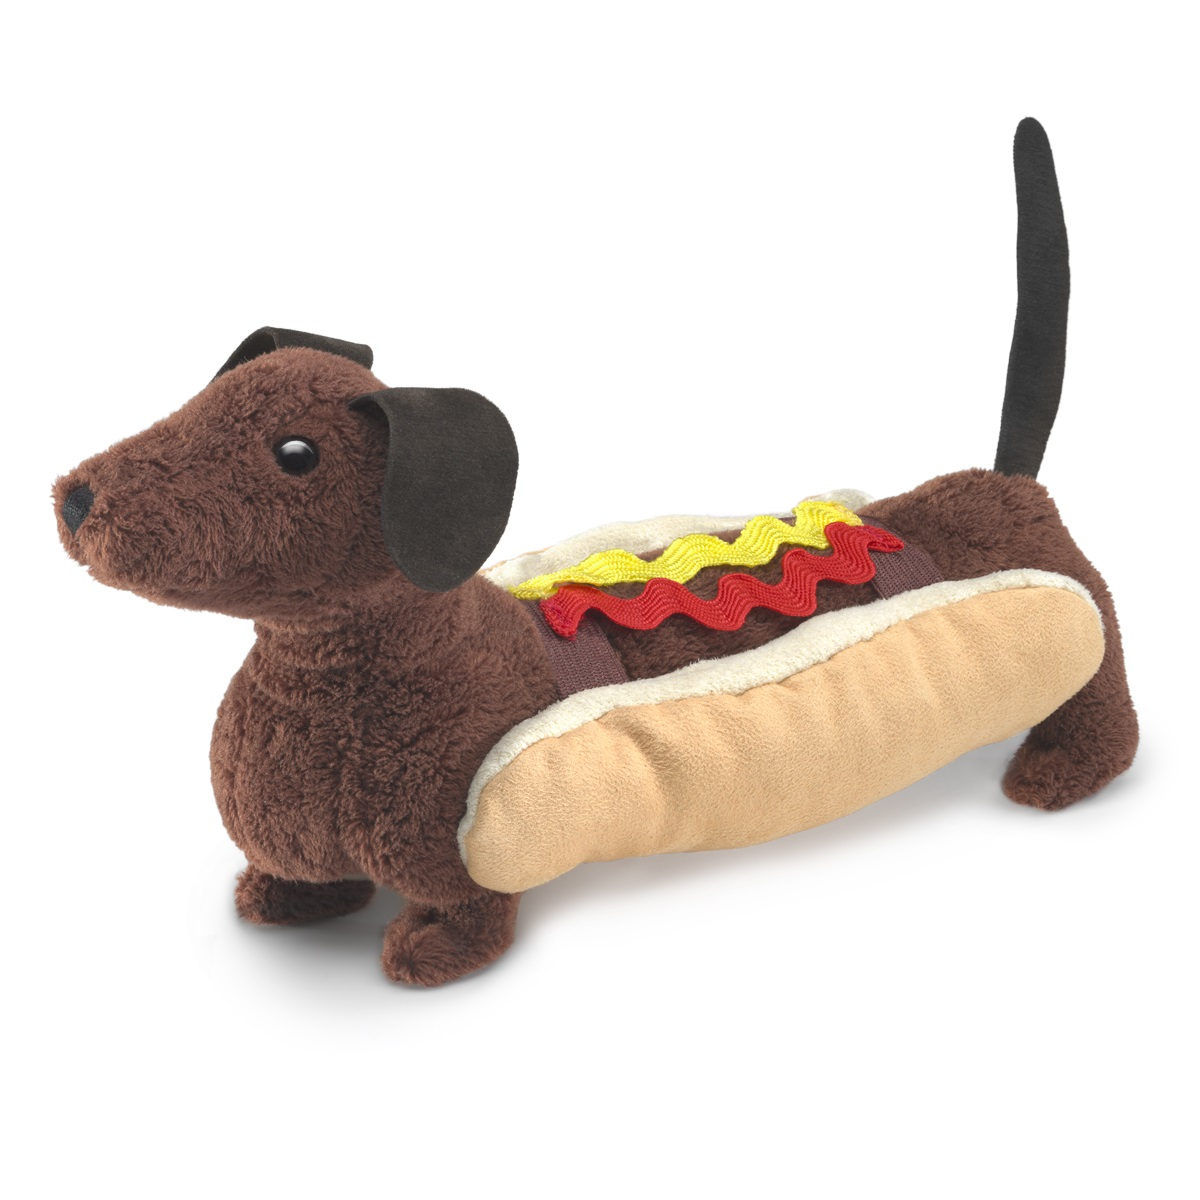 Hotdog Hand Puppet or Hot Dog by Folkmanis 3145